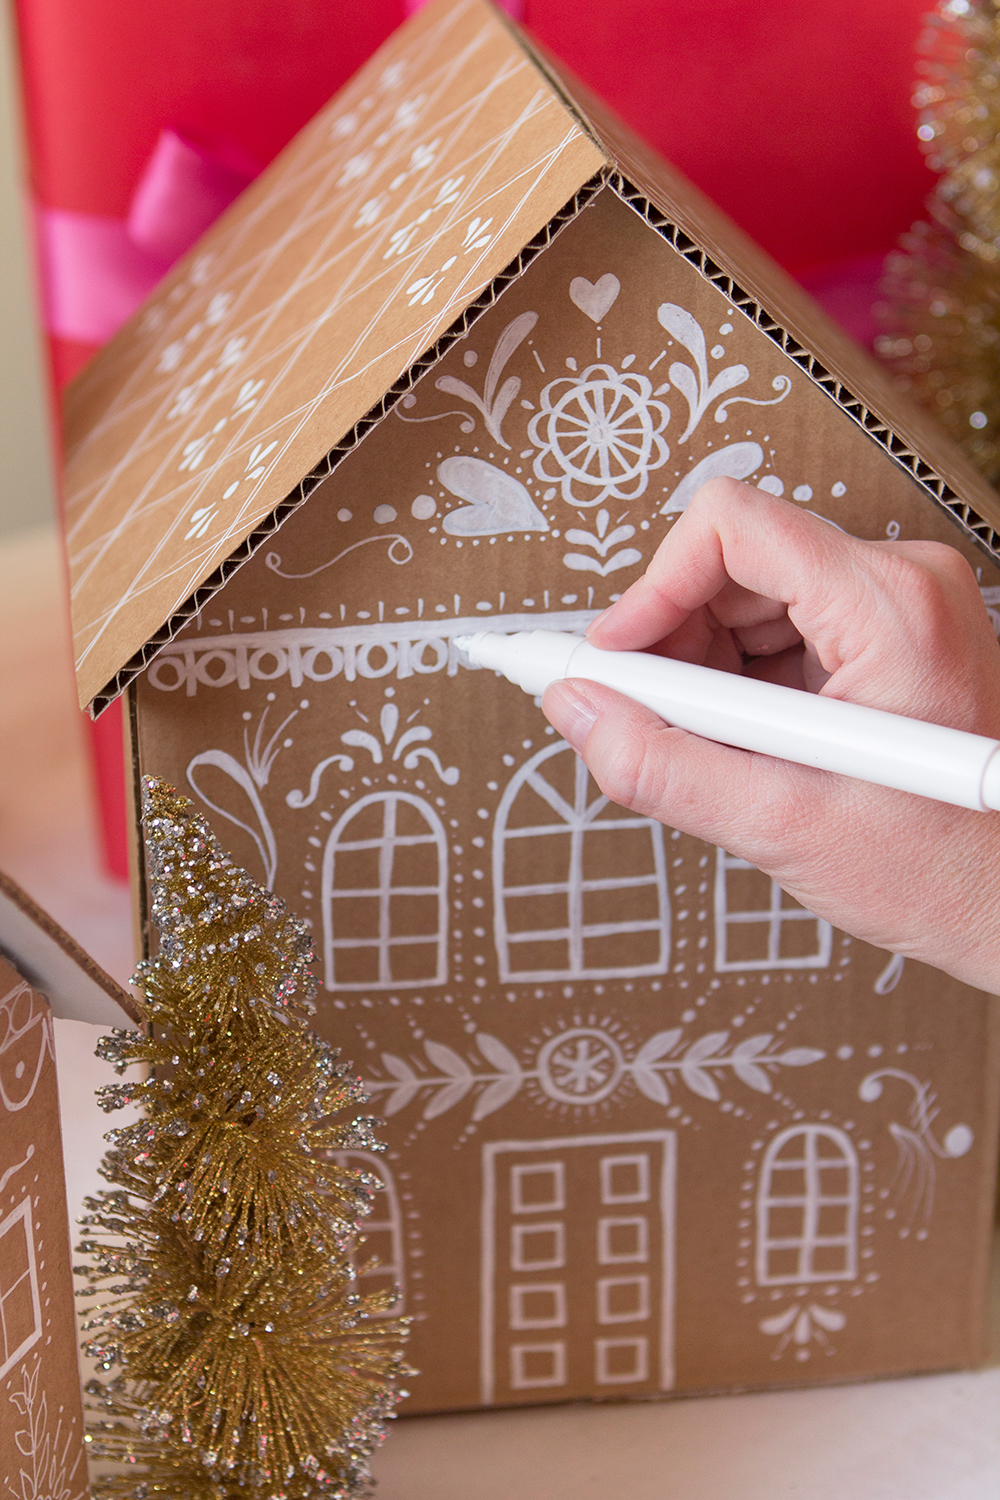 See below for the full Gingerbread house gift box tutorial!